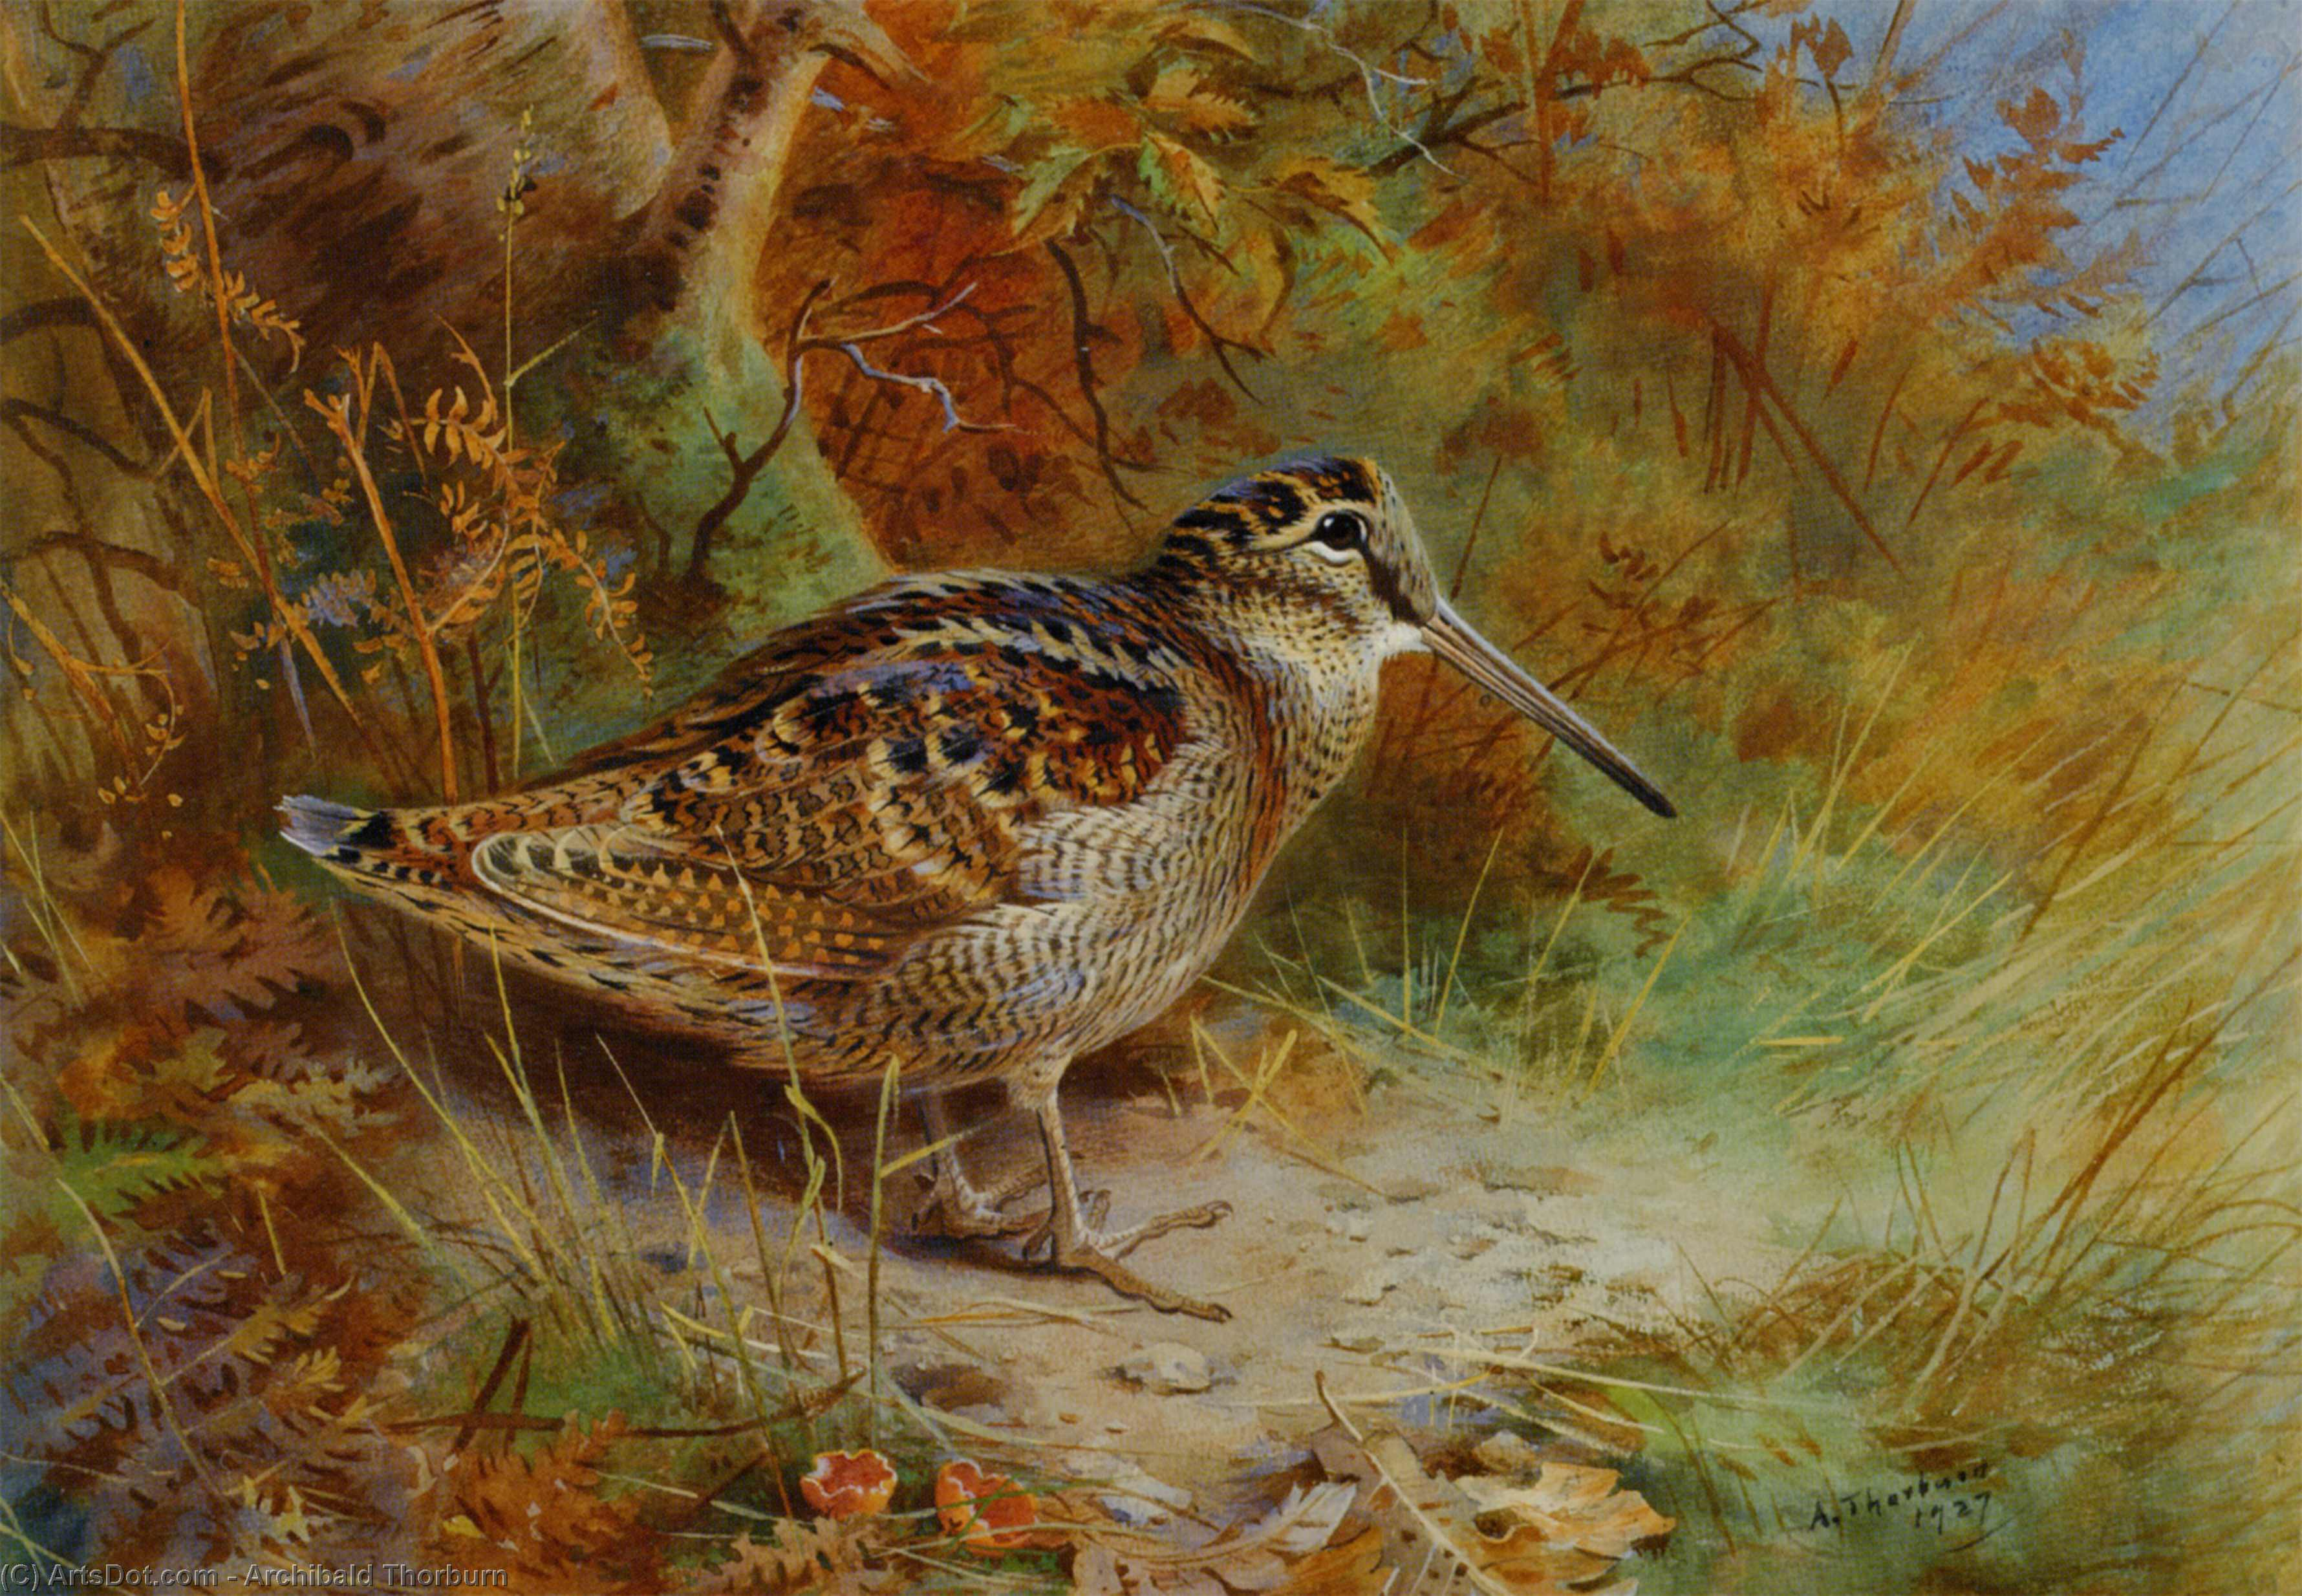 Вудкок, акварель по Archibald Thorburn (1860-1935, United Kingdom)